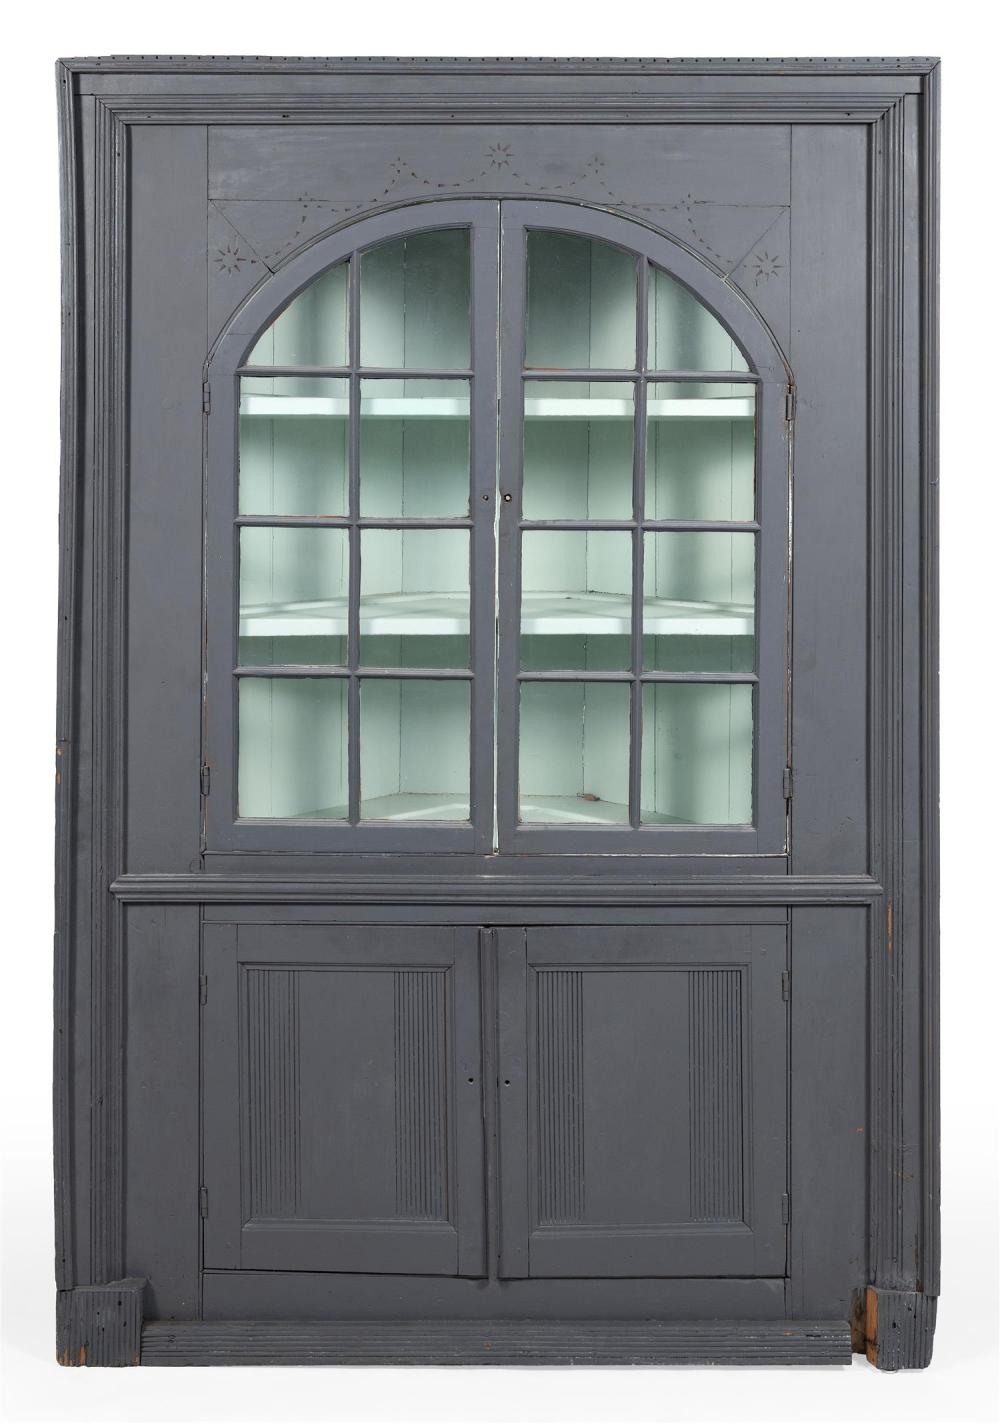 ONE-PIECE CORNER CUPBOARD In pine, under gray paint. Top with sunburst carving. Upper half with two paneled glass doors enclosing tw...